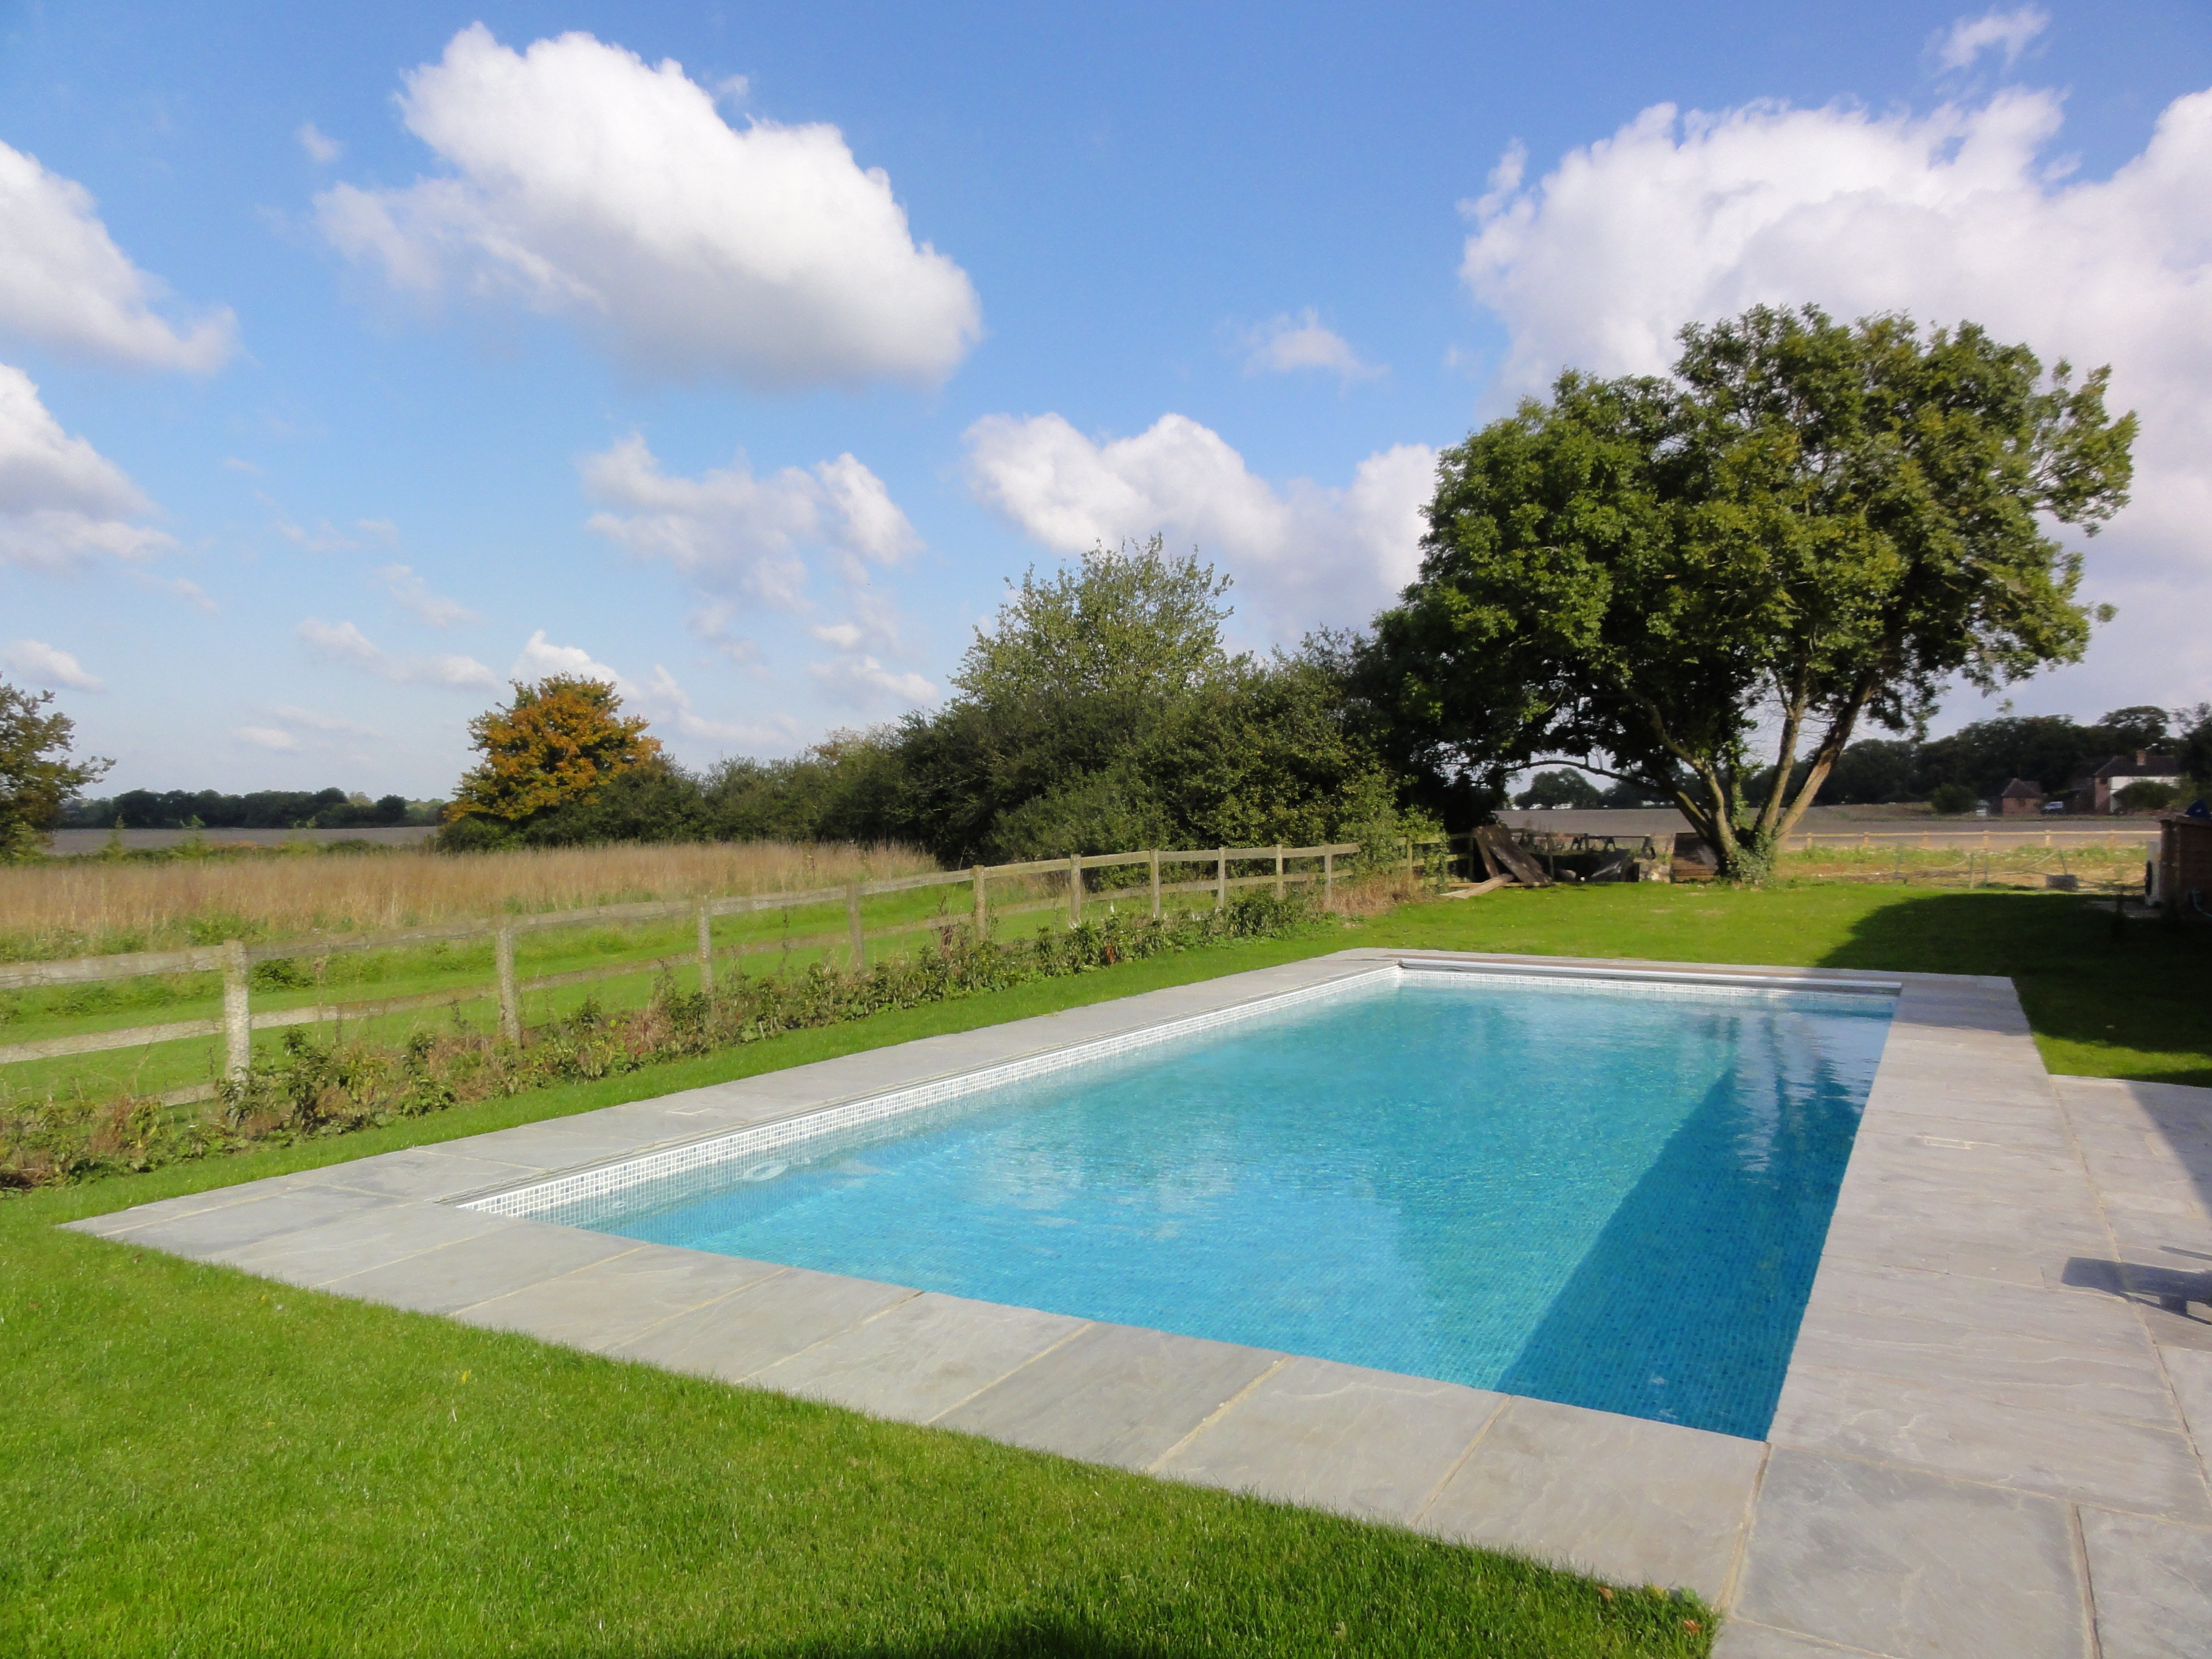 New Liner Pool With Automatic Safety Cover Arborfield Berkshire Ascot Pools Swimming